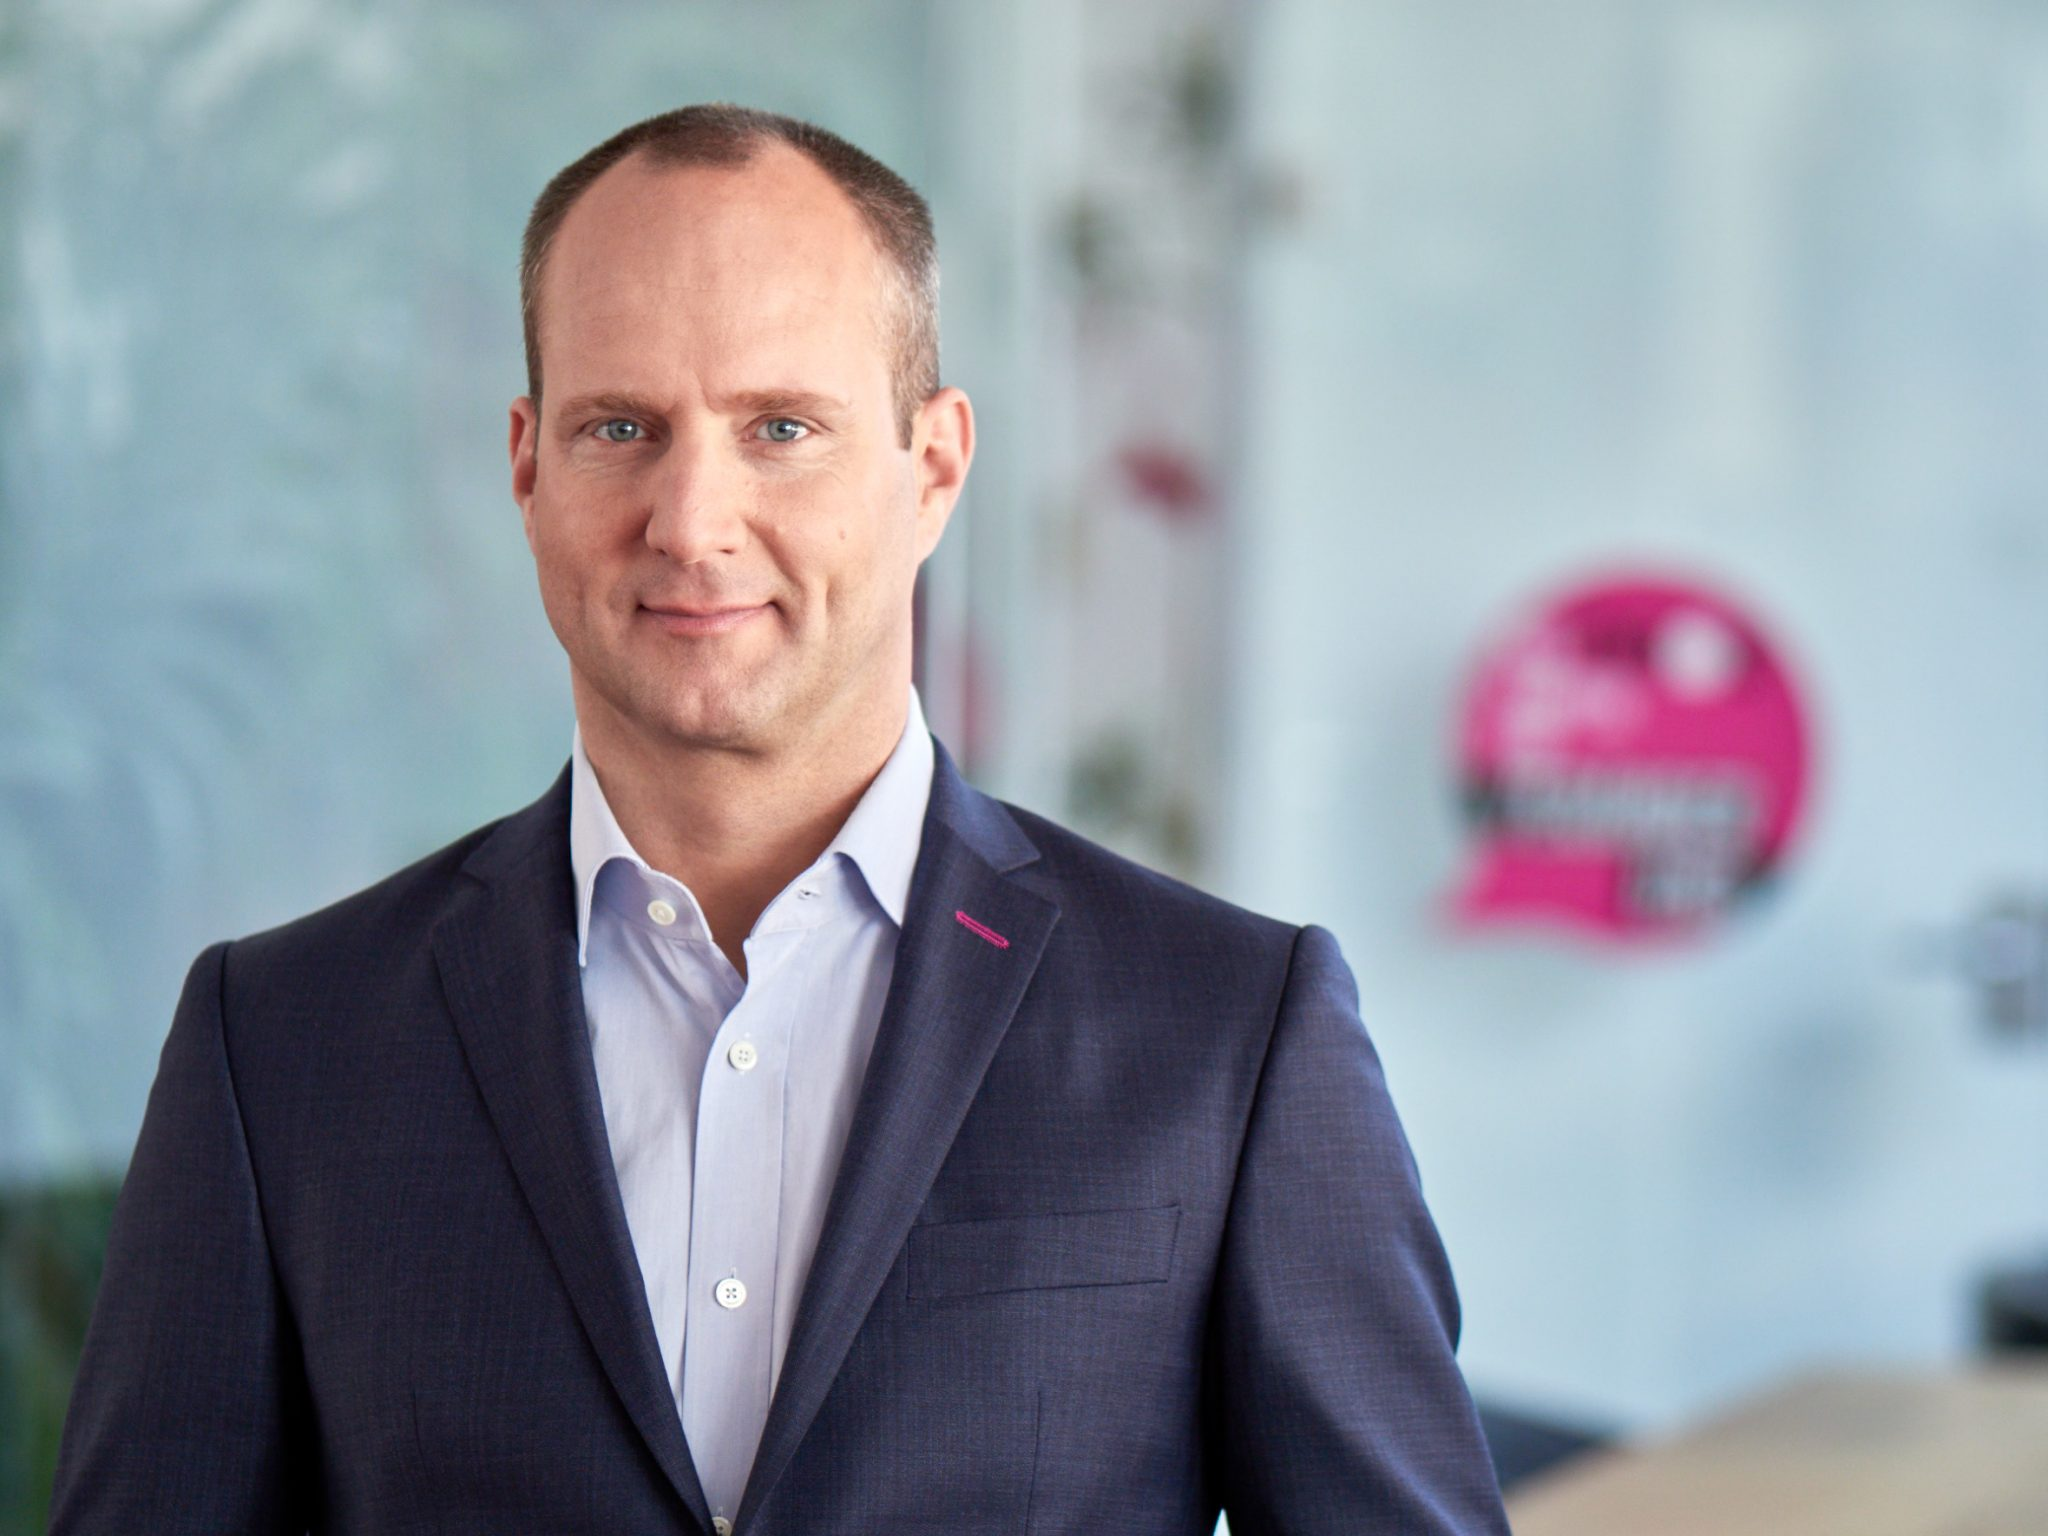 INTERVIEW MATTHIAS STROLZ___NEOS